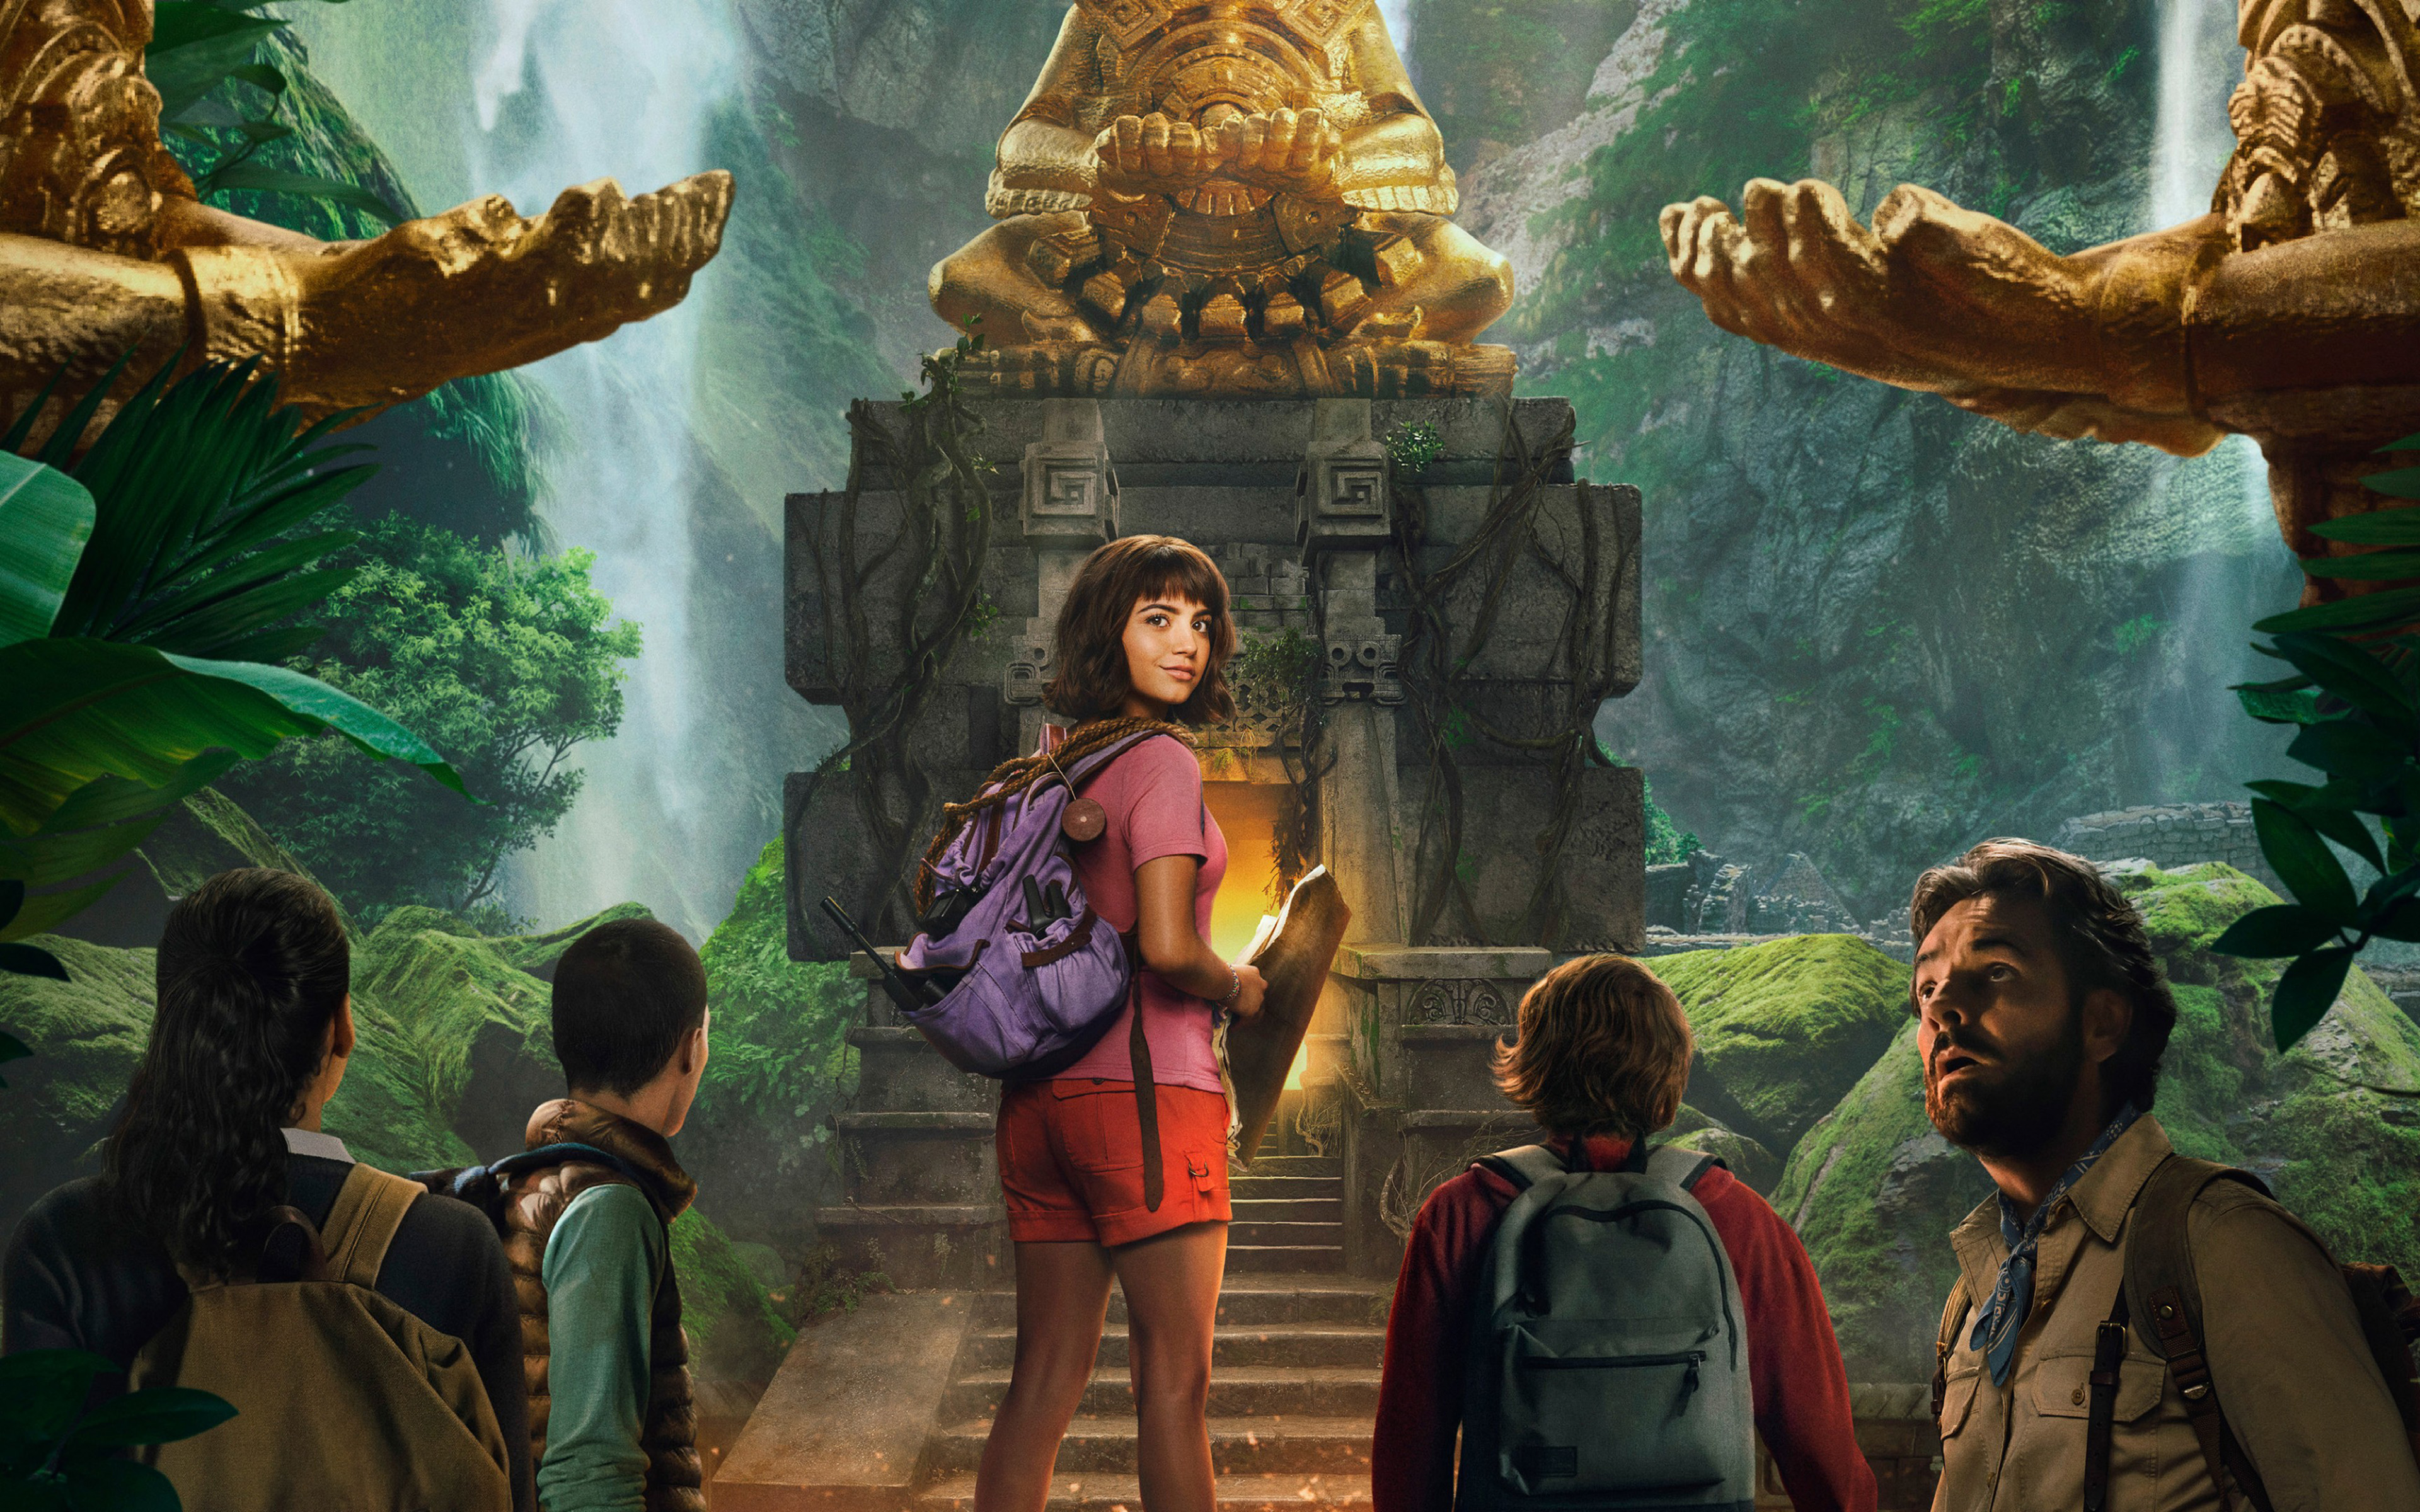 Download wallpapers Dora and the Lost City of Gold 2019 4k 3840x2400